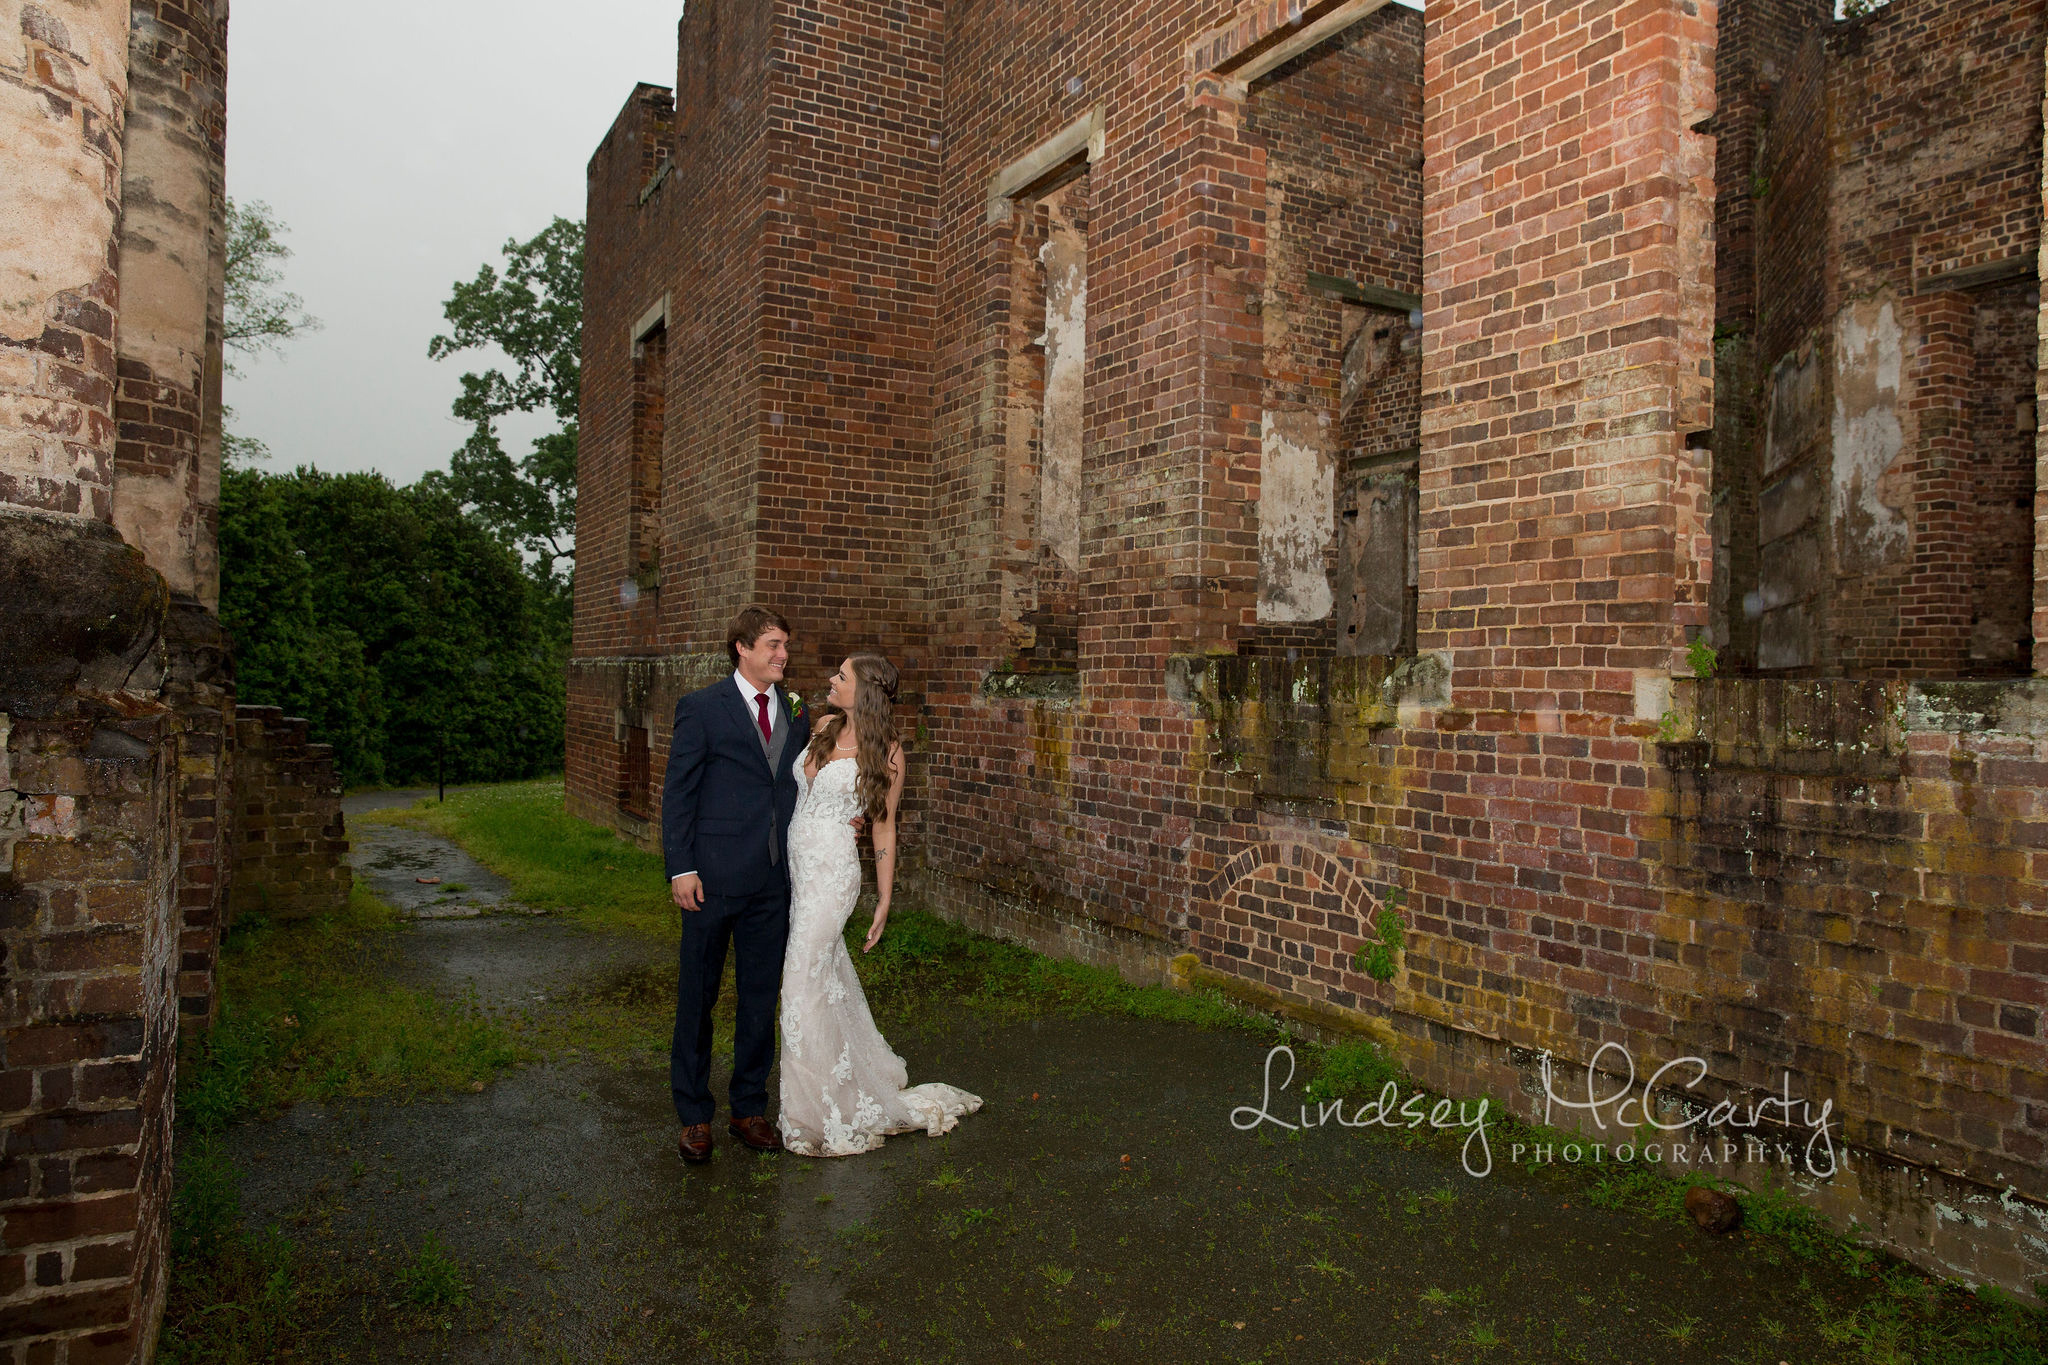 Lindsey McCarty Photography | Barboursville Wedding | Barboursville Vineyards | Barboursville Ruins | Barboursville Ruins Wedding | Virginia Wedding Photographer